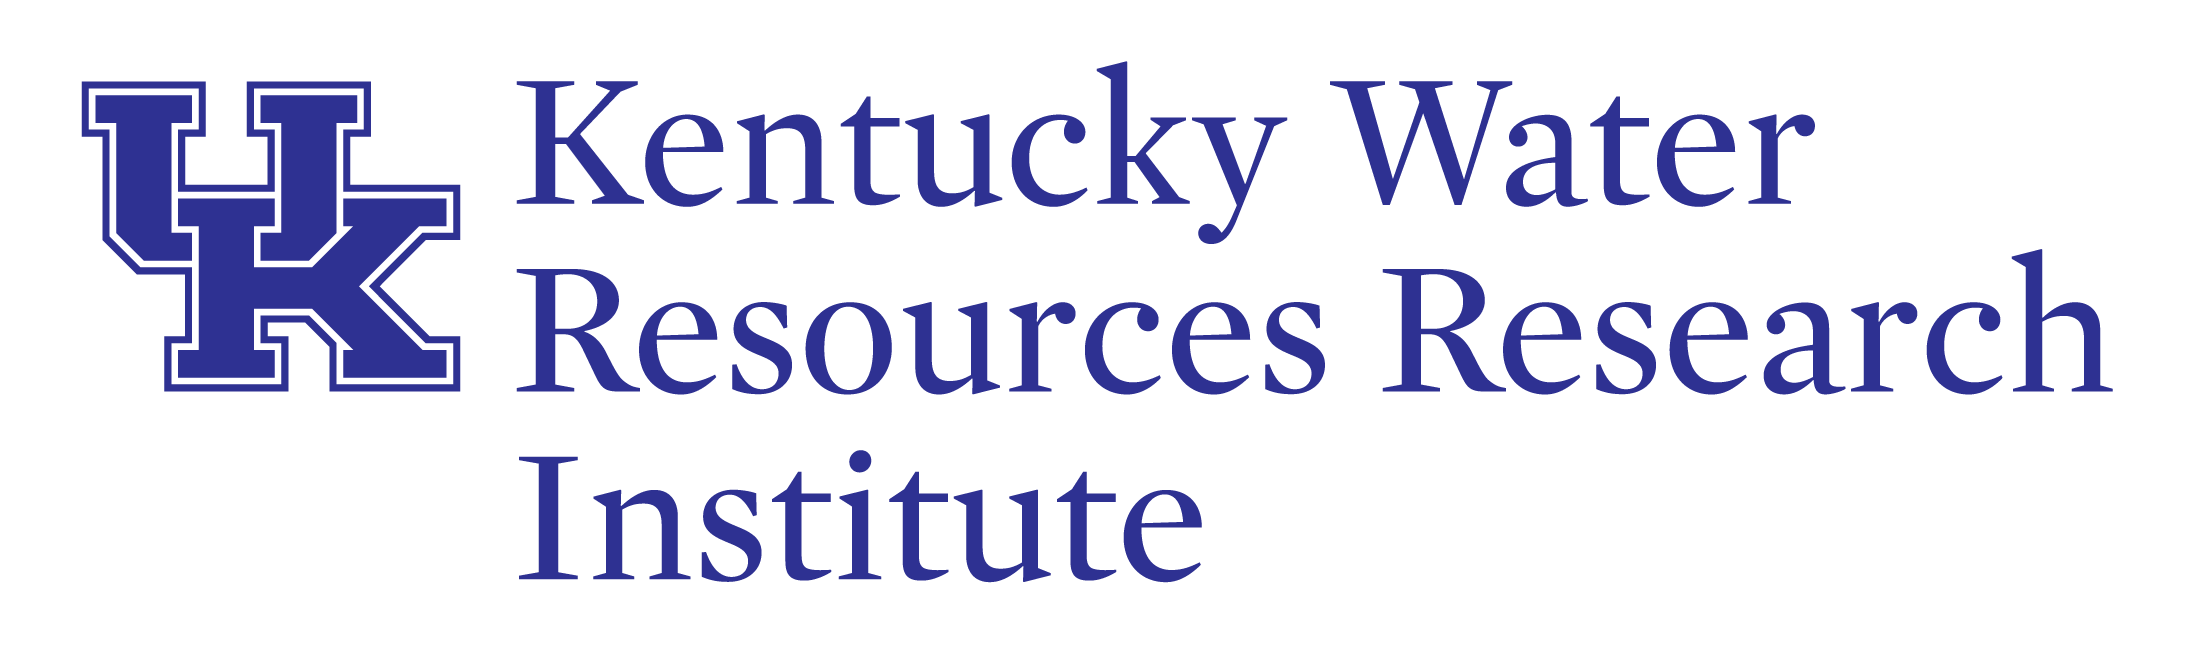 Kentucky Water Resources Research Institute